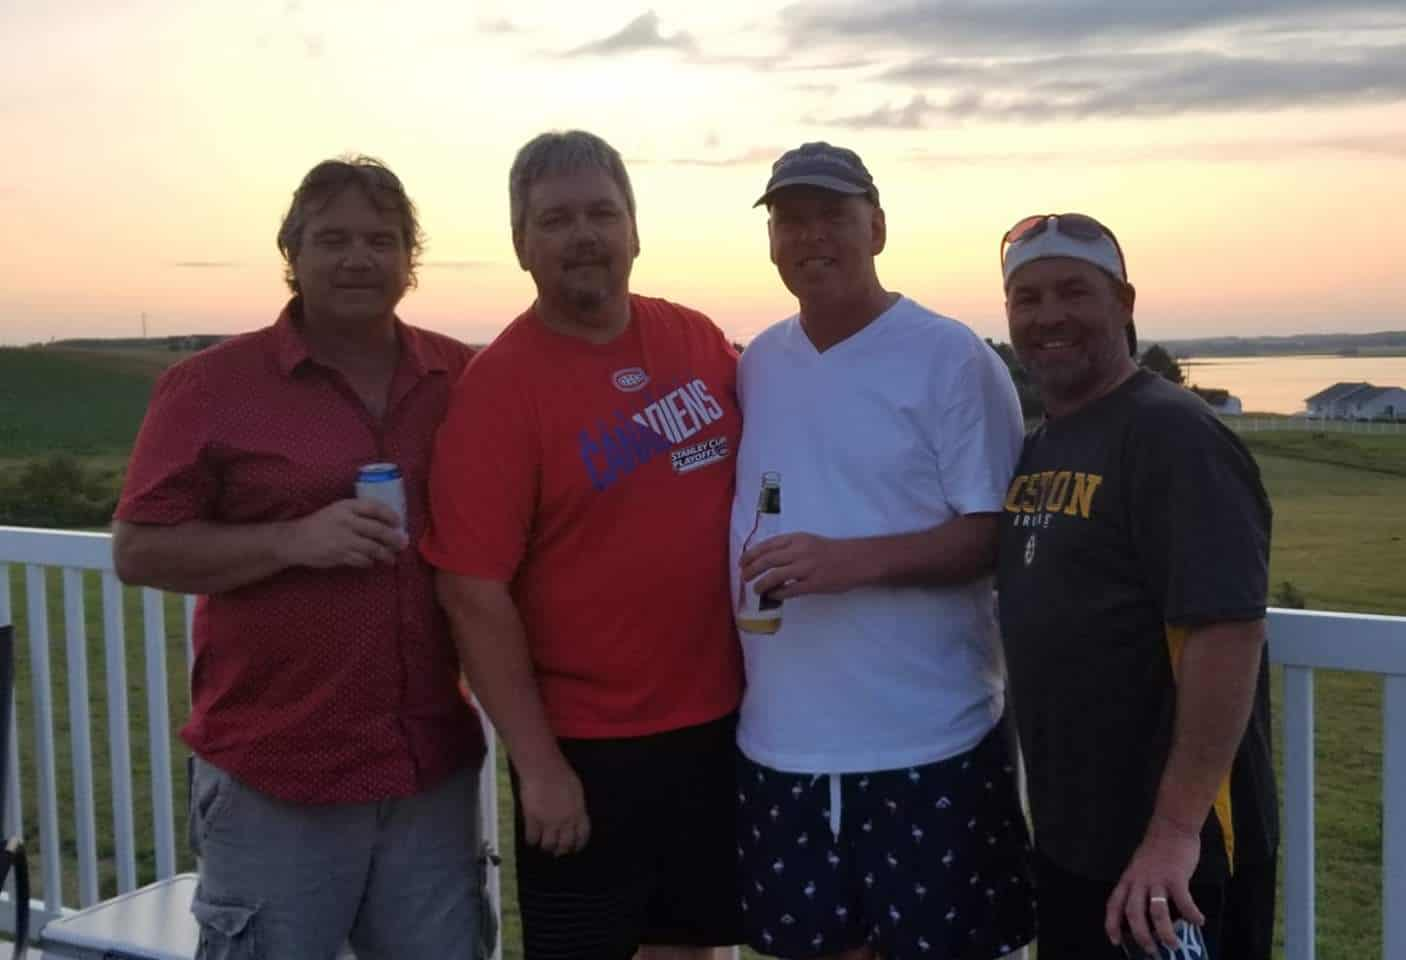 picture of guys on vacation, faces are too dark